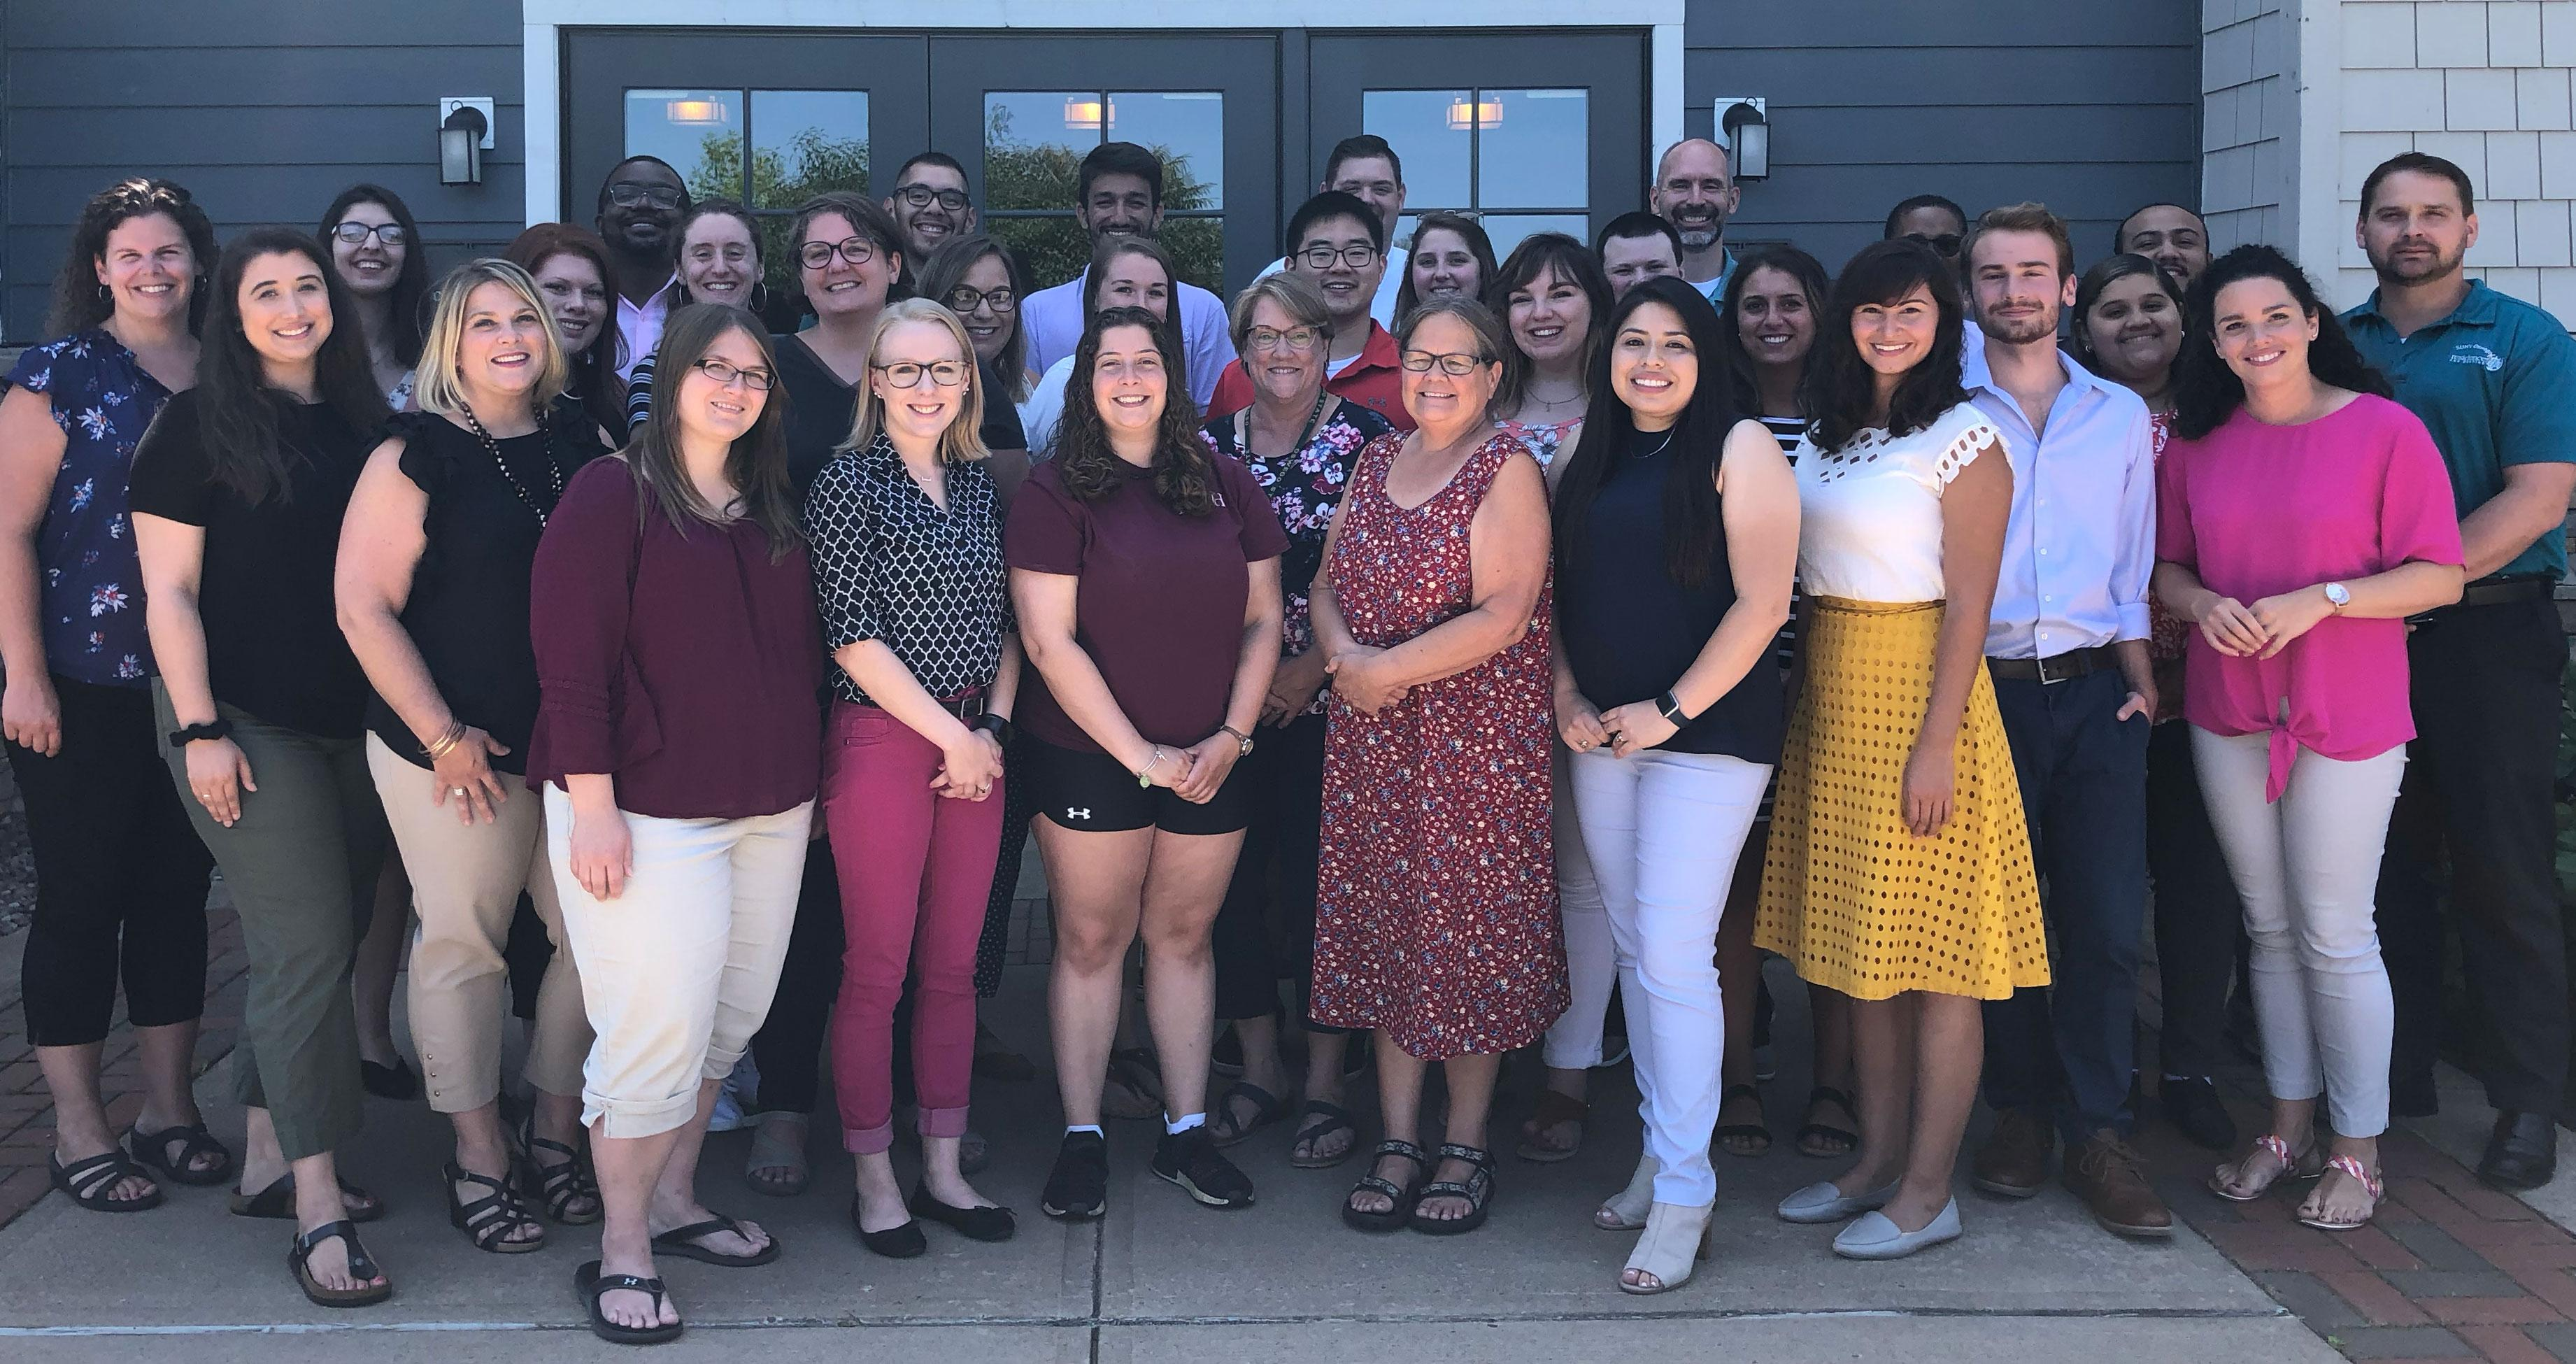 The new Residence Hall staff for Fall 2019.